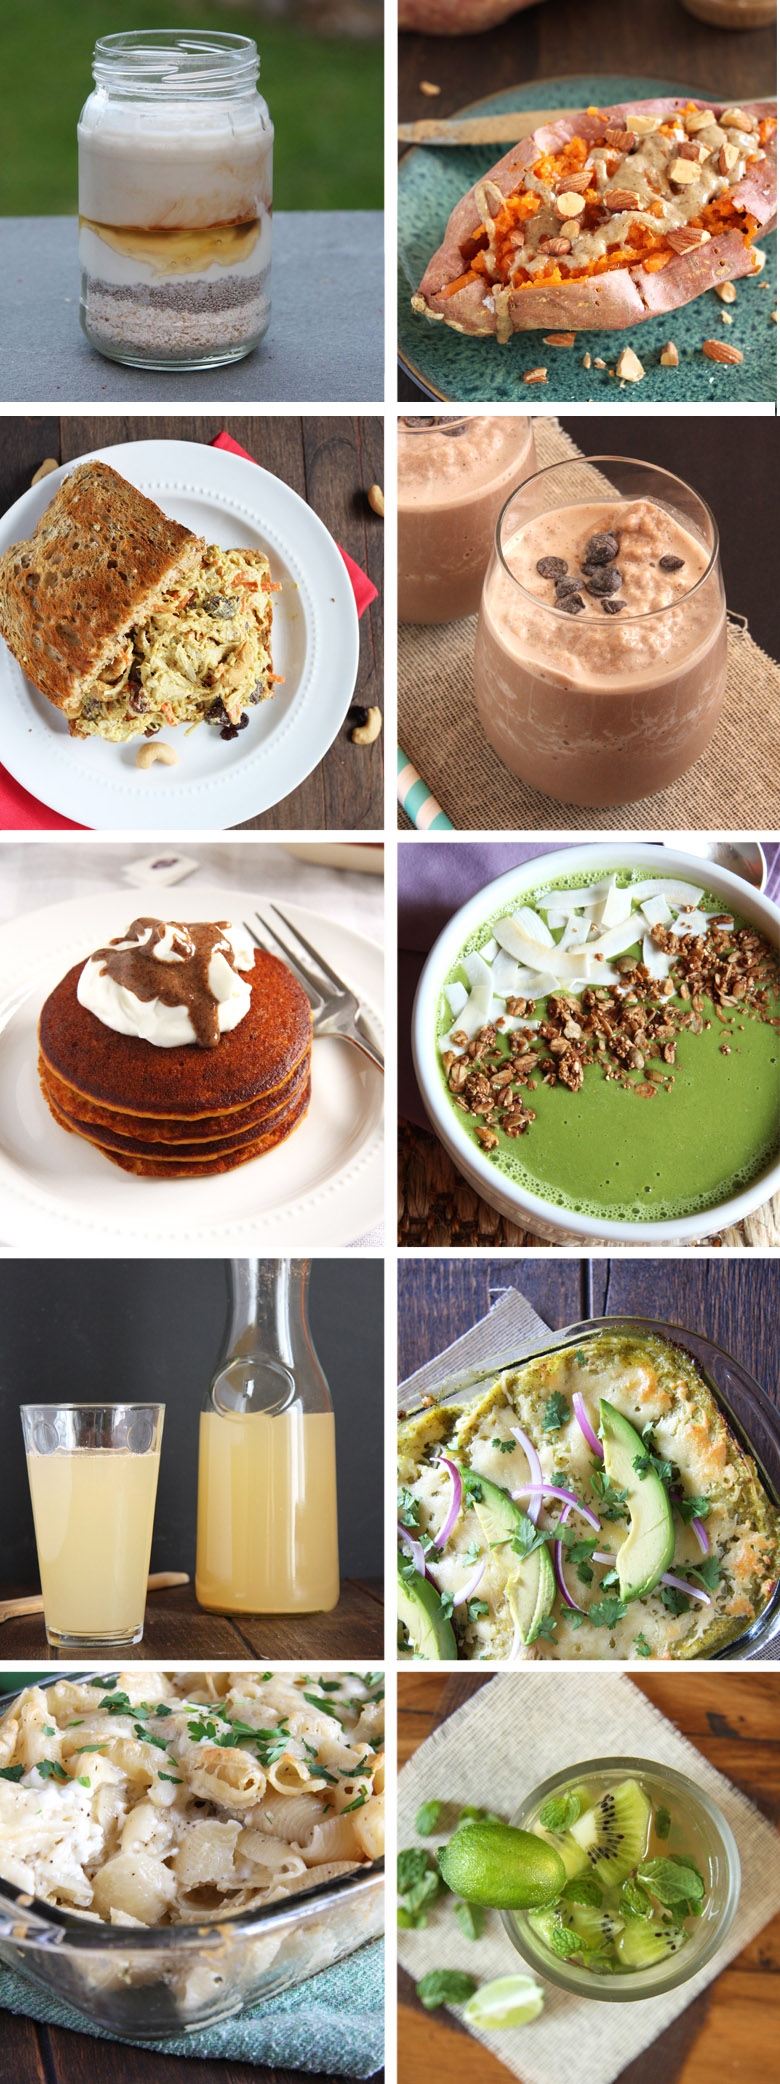 My Favorite Blog Recipes by 24 Carrot Life